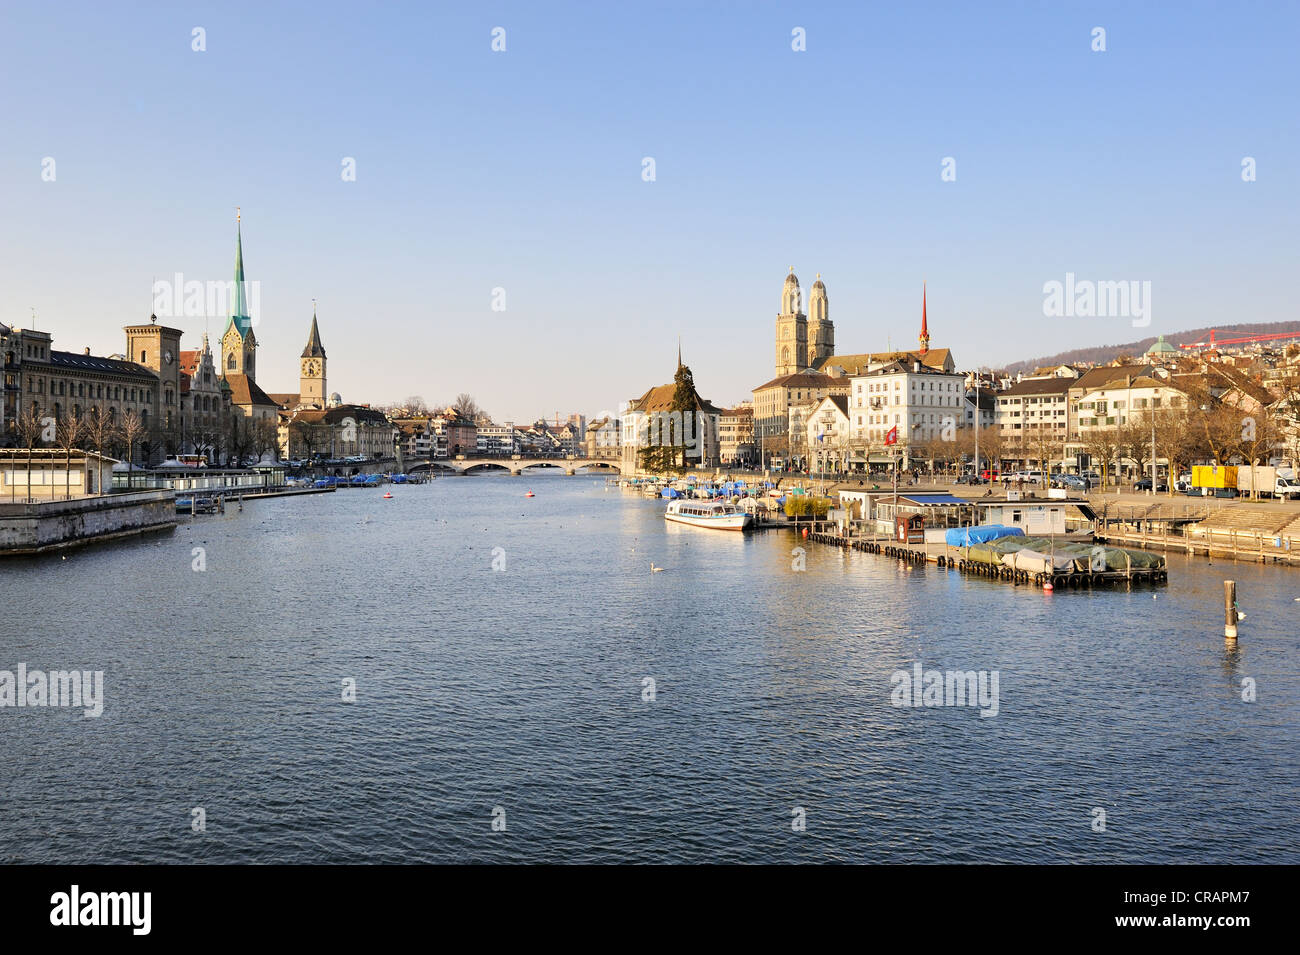 View from the Quai bridge over the River Limmat on the Limmatquai quay and the three city churches, Grossmuenster Stock Photo